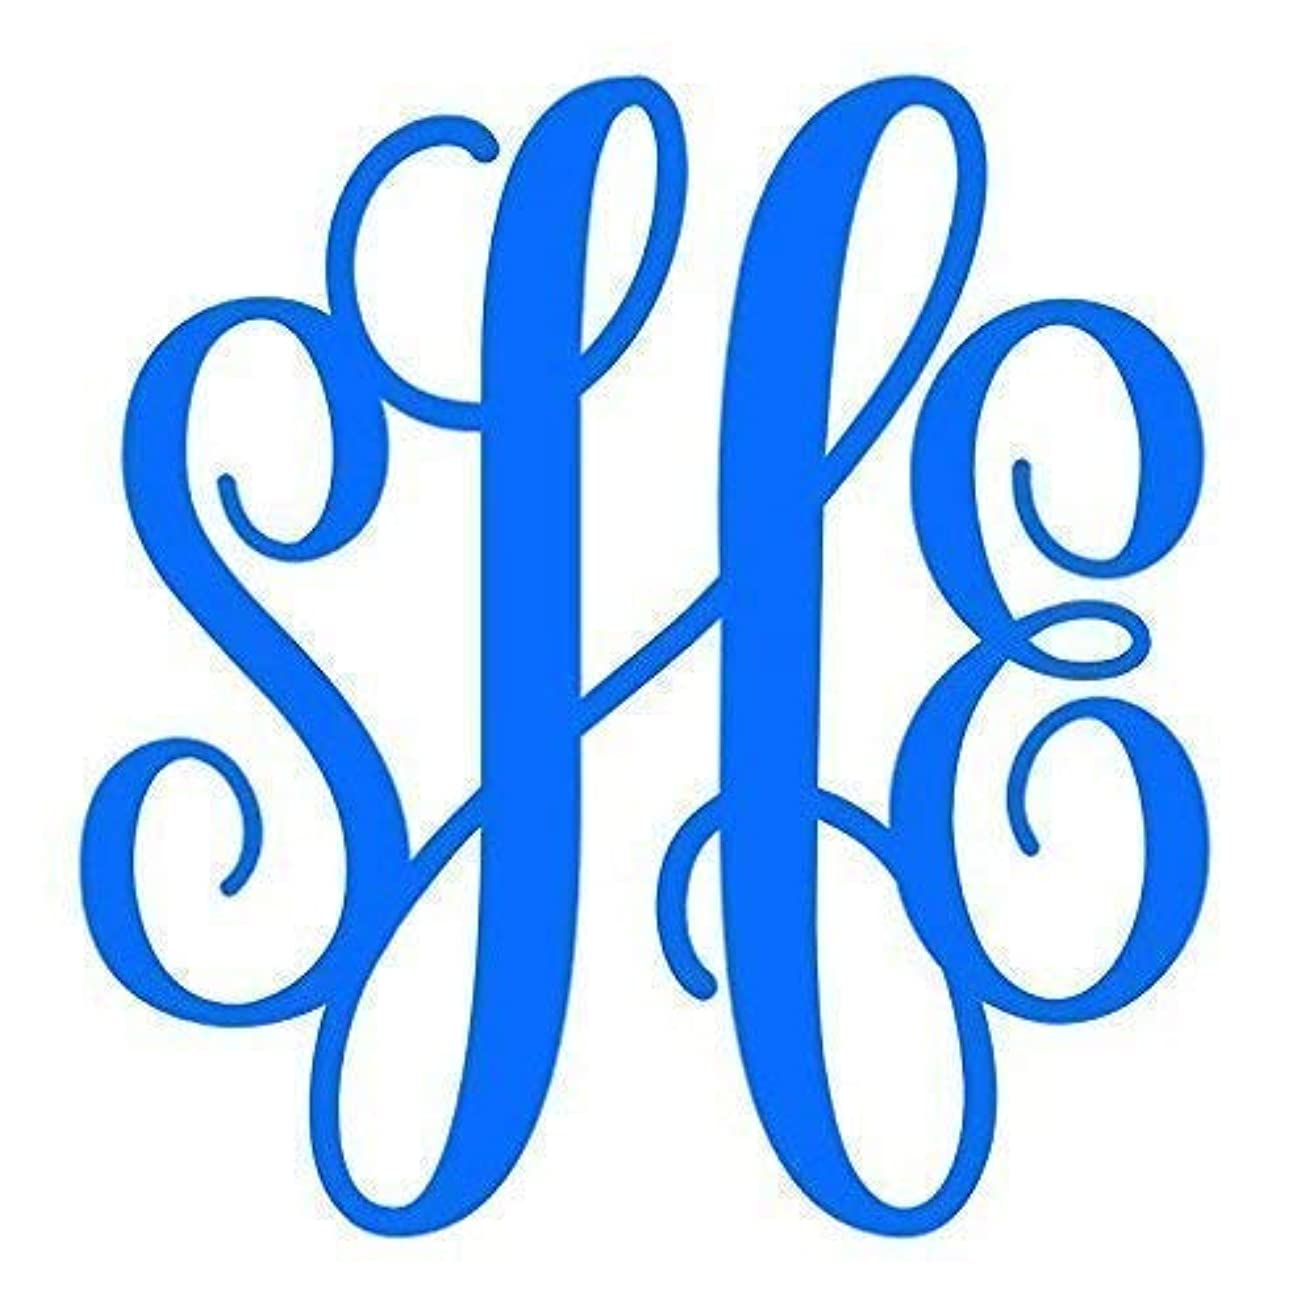 Custom Monogram Vinyl Decal Sticker - Personalized for Car Windows, Tumblers, Laptops - Choose Color, Size